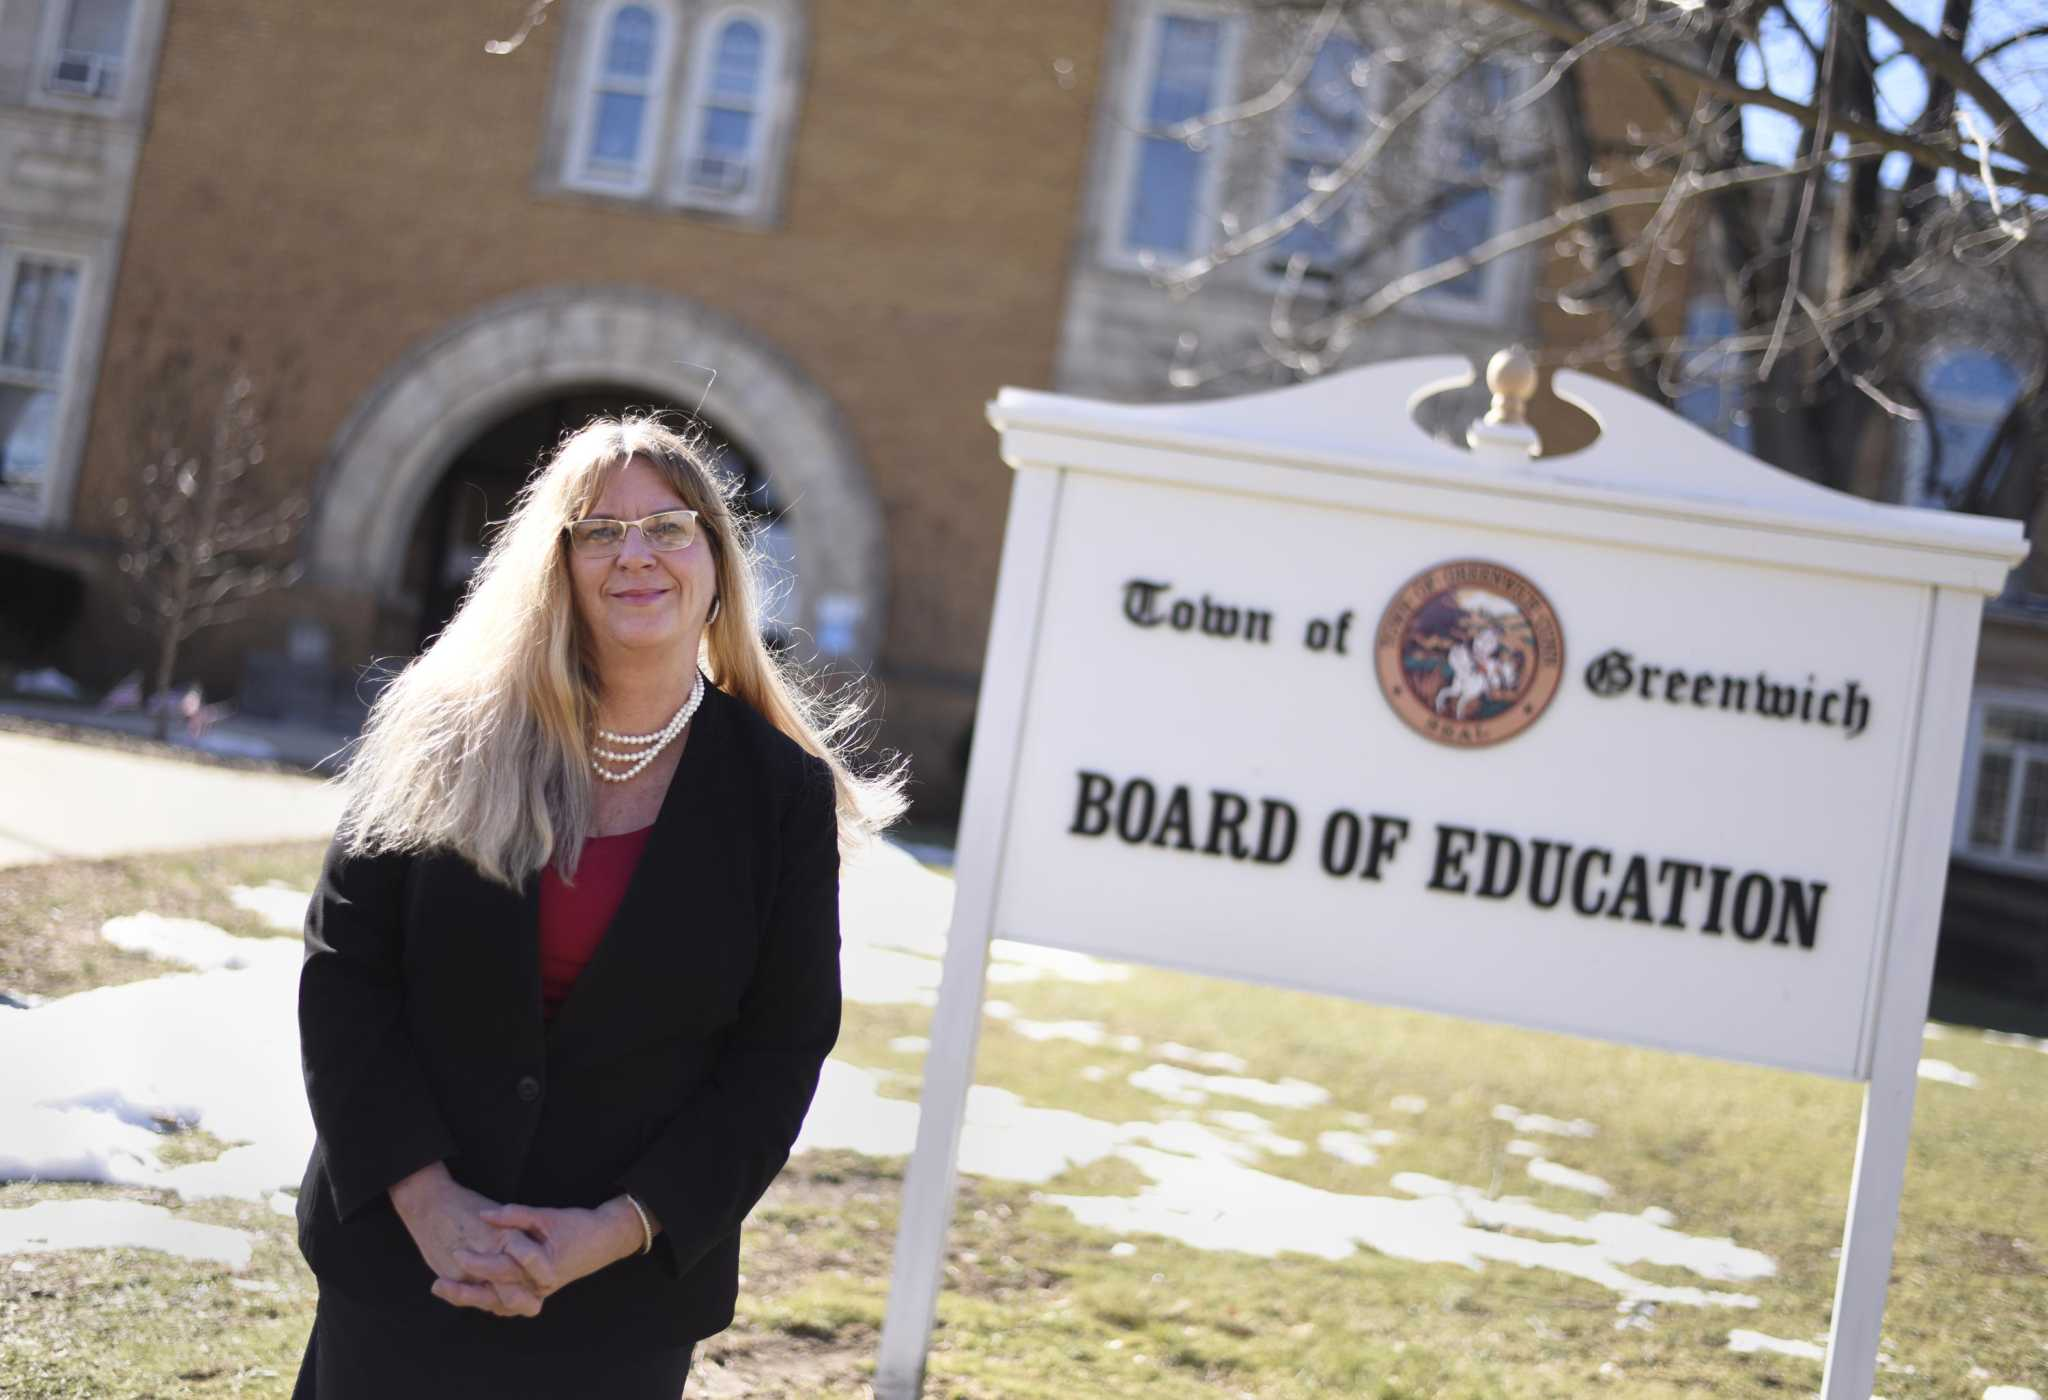 Greenwich teachers who showed video deemed 'not appropriate' will not finish year with classes